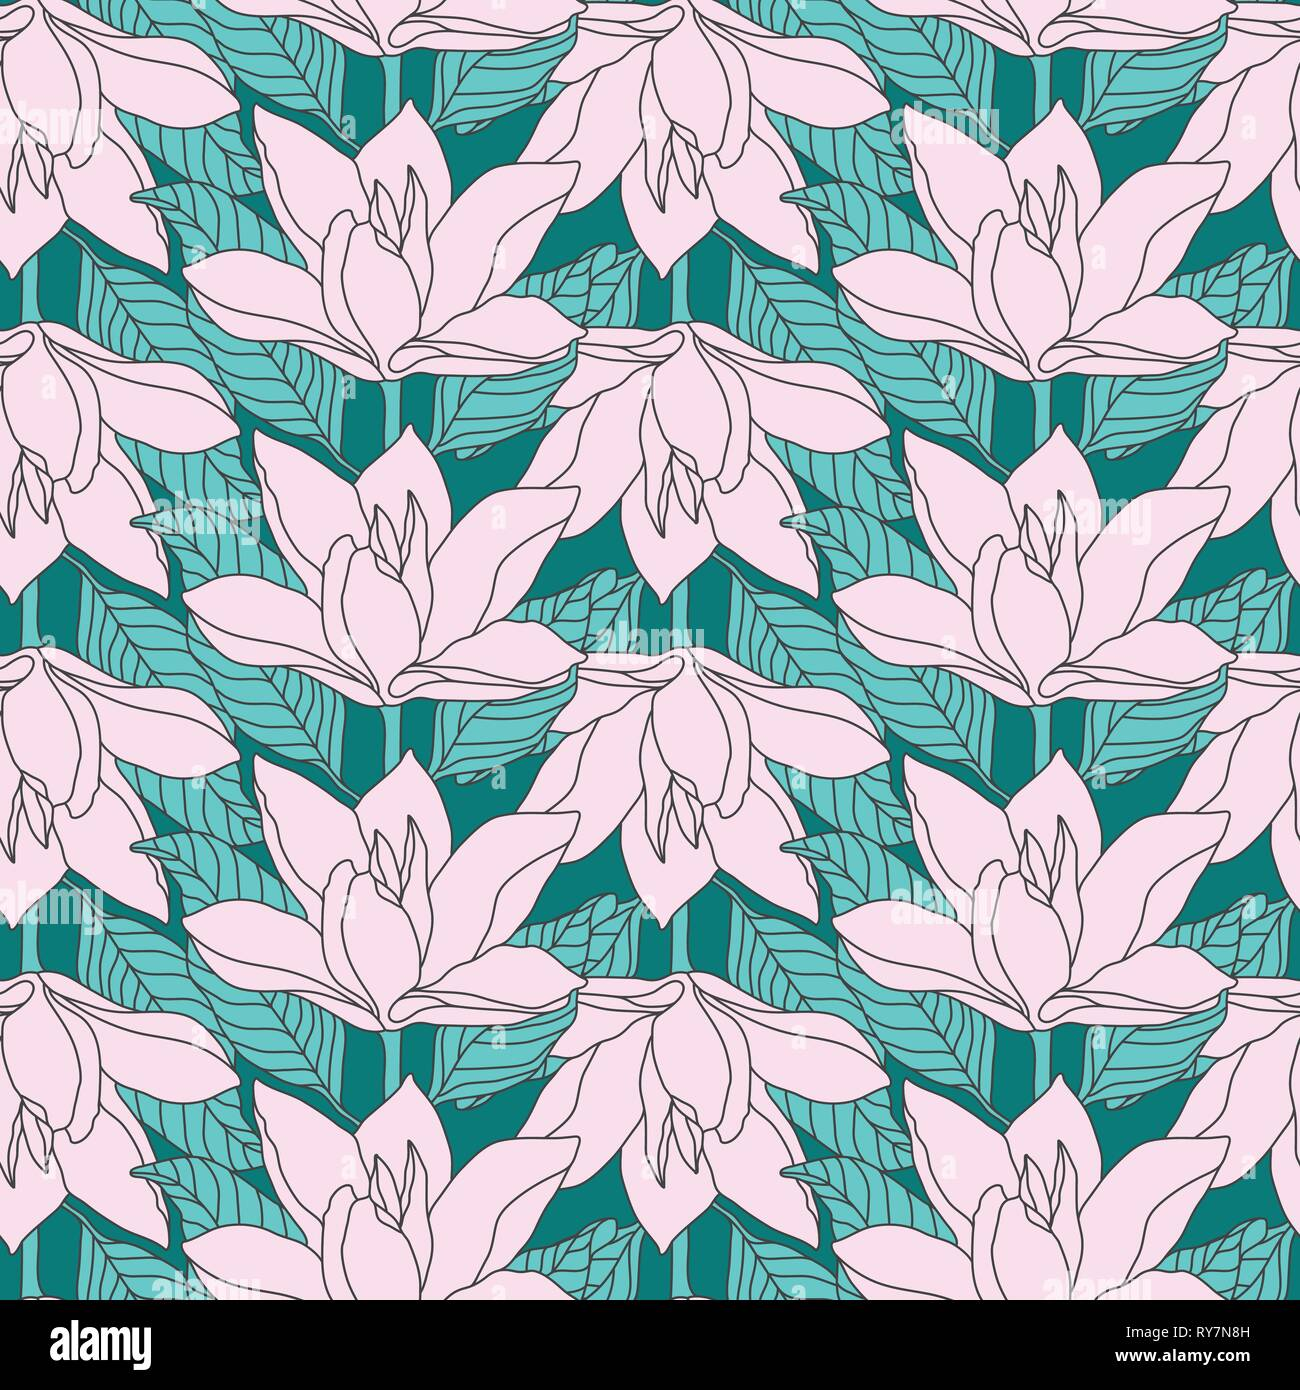 Pink Magnolia Line Drawing Flower Seamless Pattern. Unique